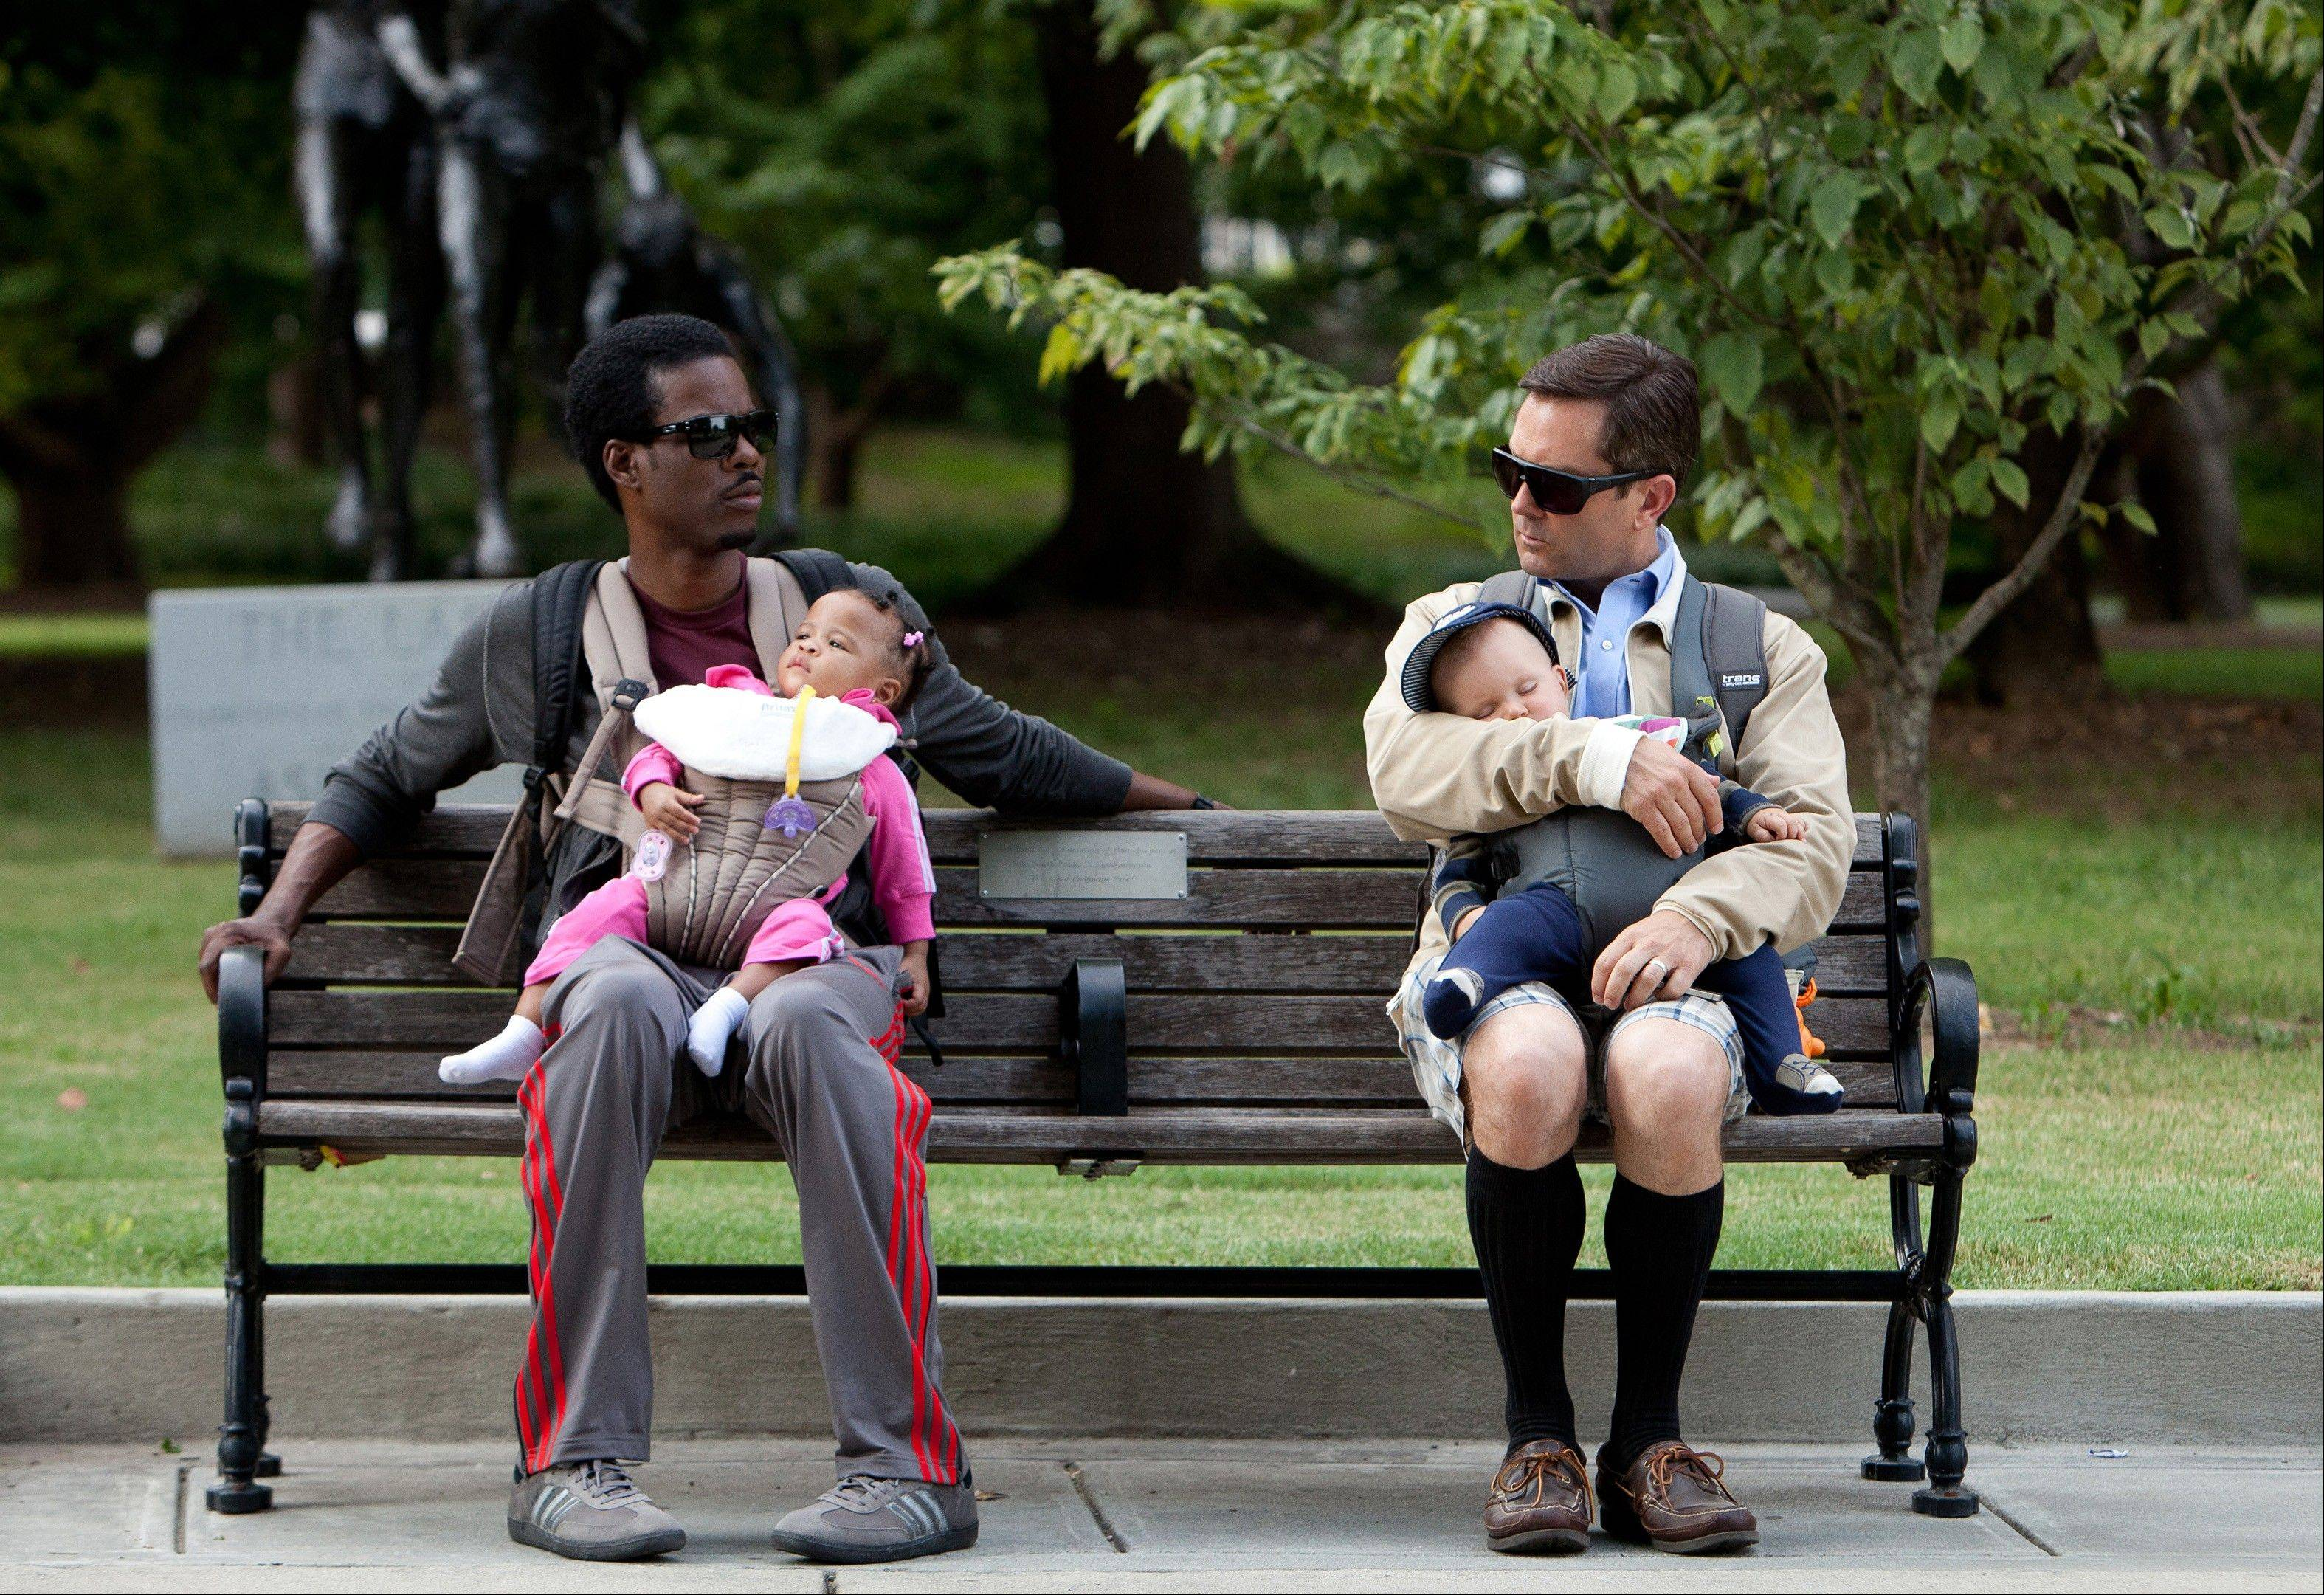 "Chris Rock, left, and Tom Lennon with children in a scene from the movie ""What to Expect When You're Expecting."" A growing league of dads are staying home, at least part-time. Some at-home dads, those by choice or pushed out of the job market, said they've endured some snark by their working brethren, but they consider it more of a dad-on-dad discomfort than a serious divide."